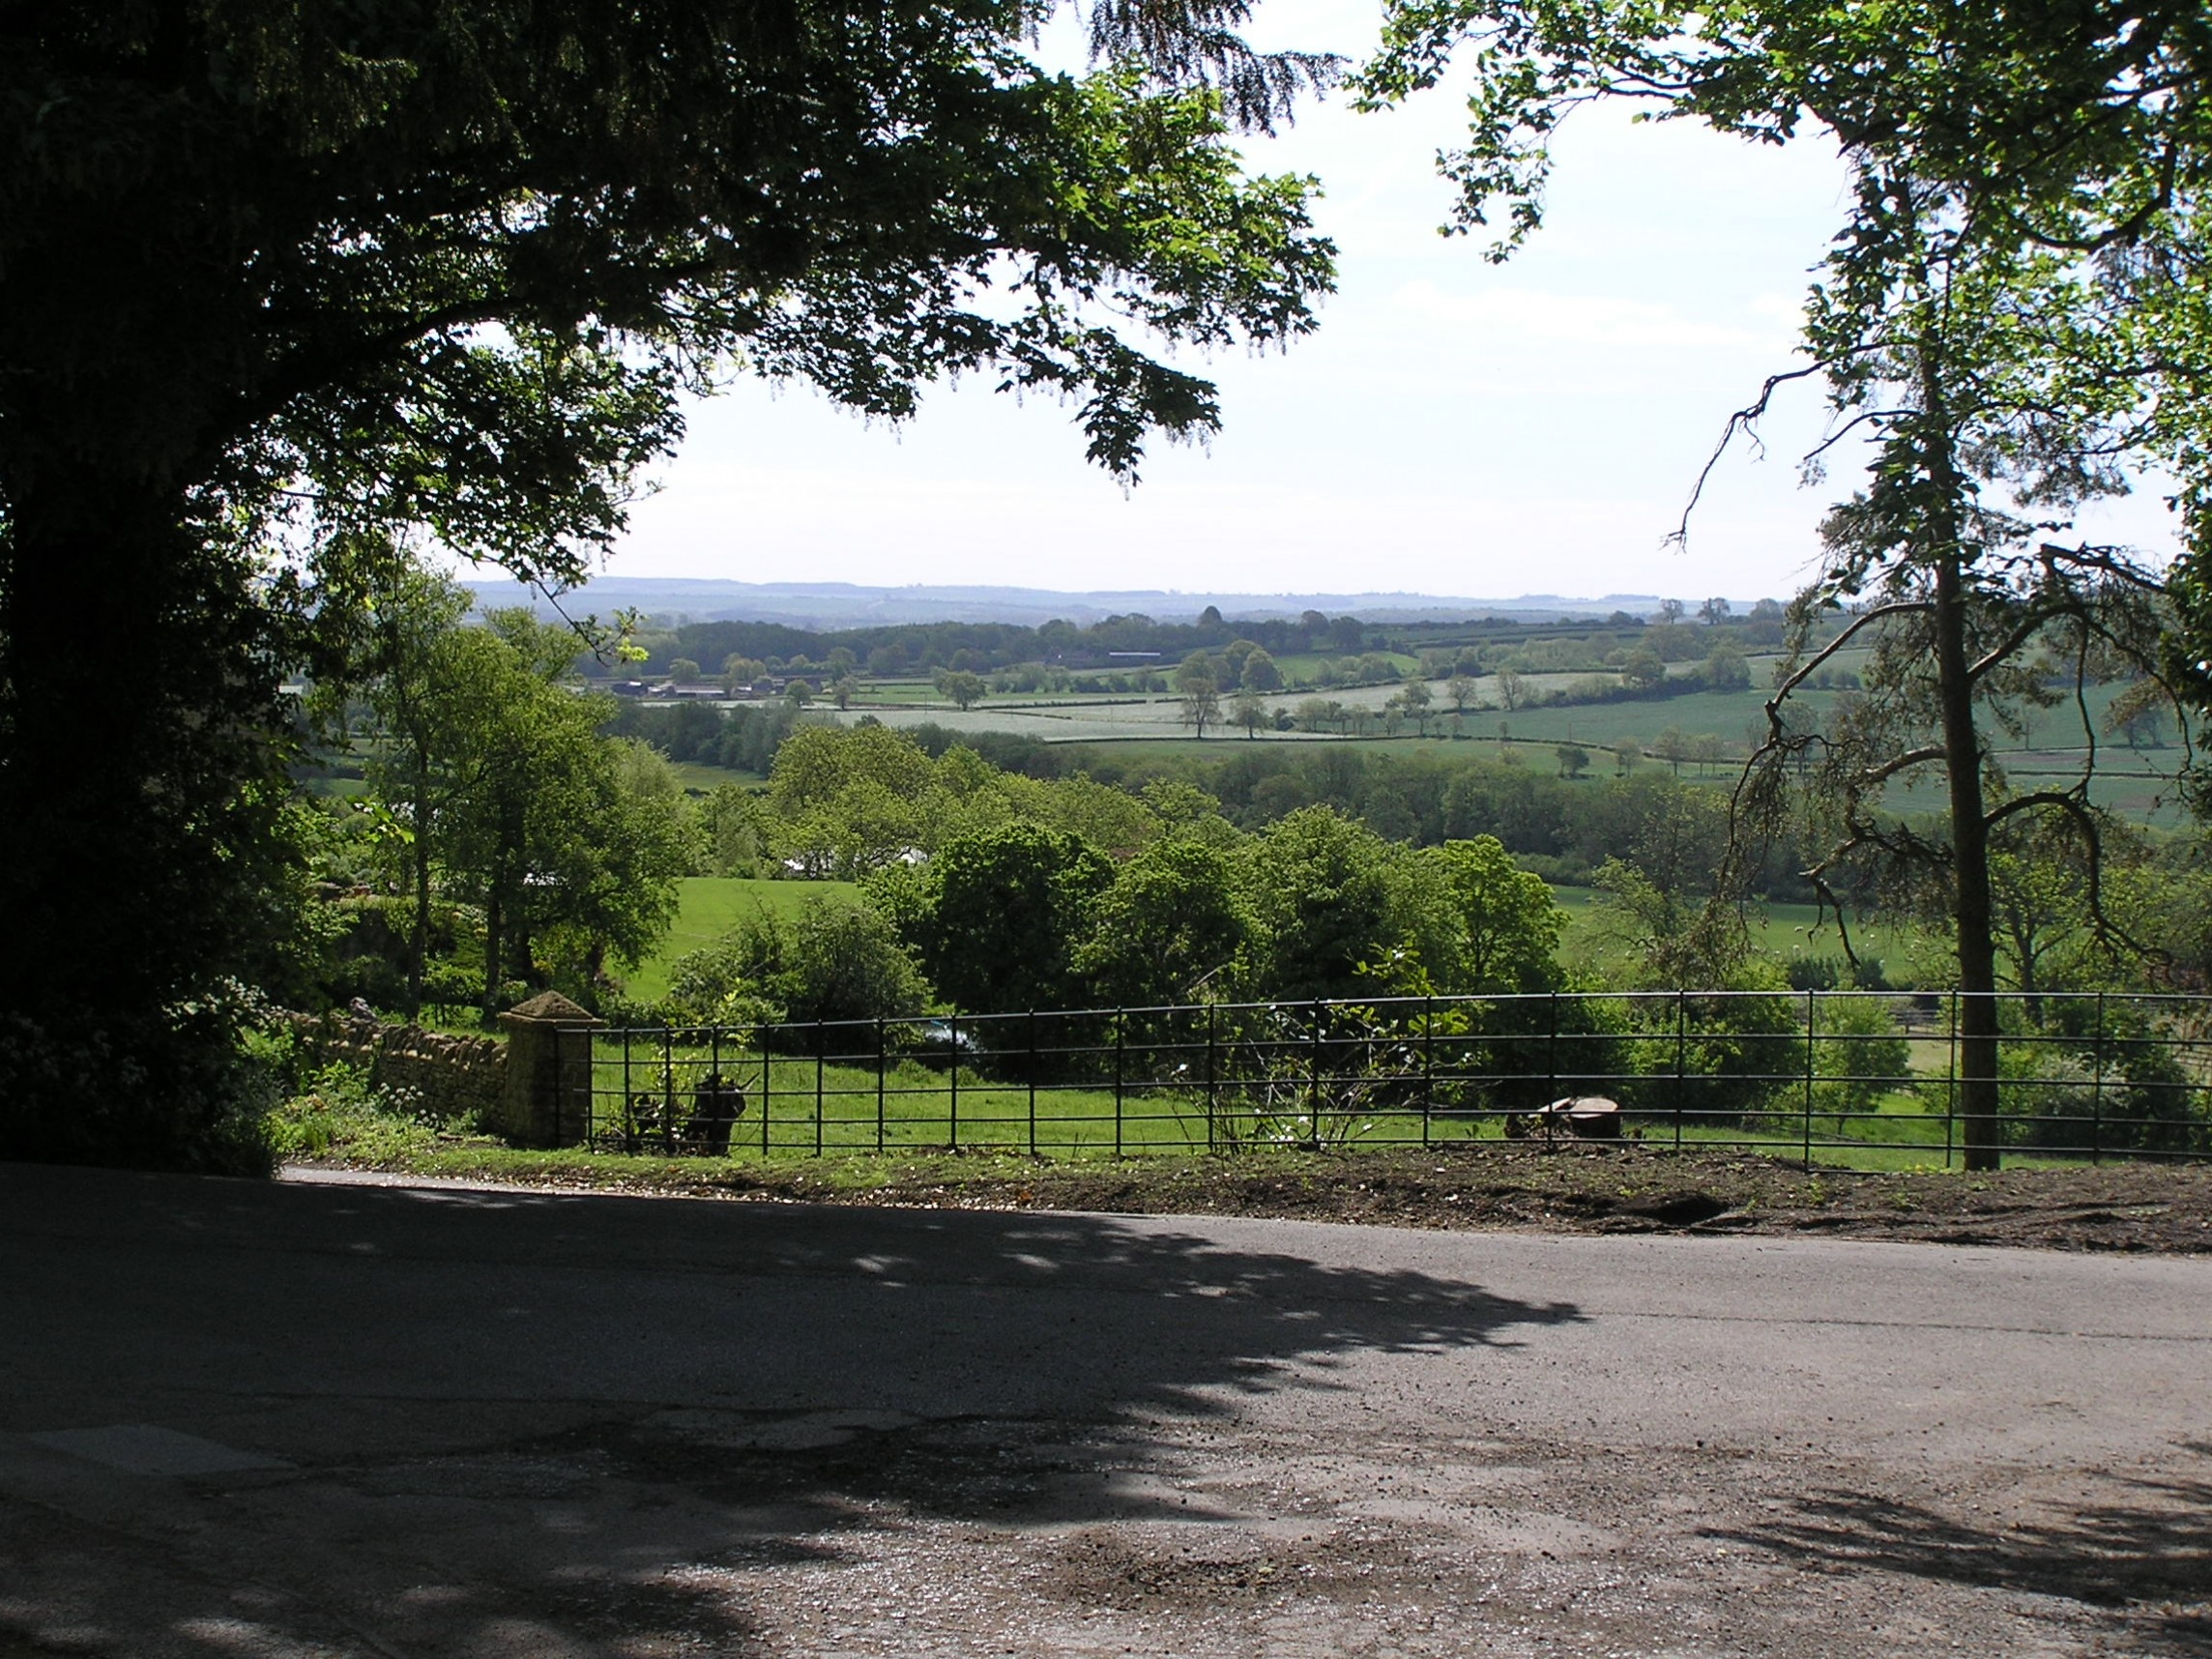 View from Maugersbury village